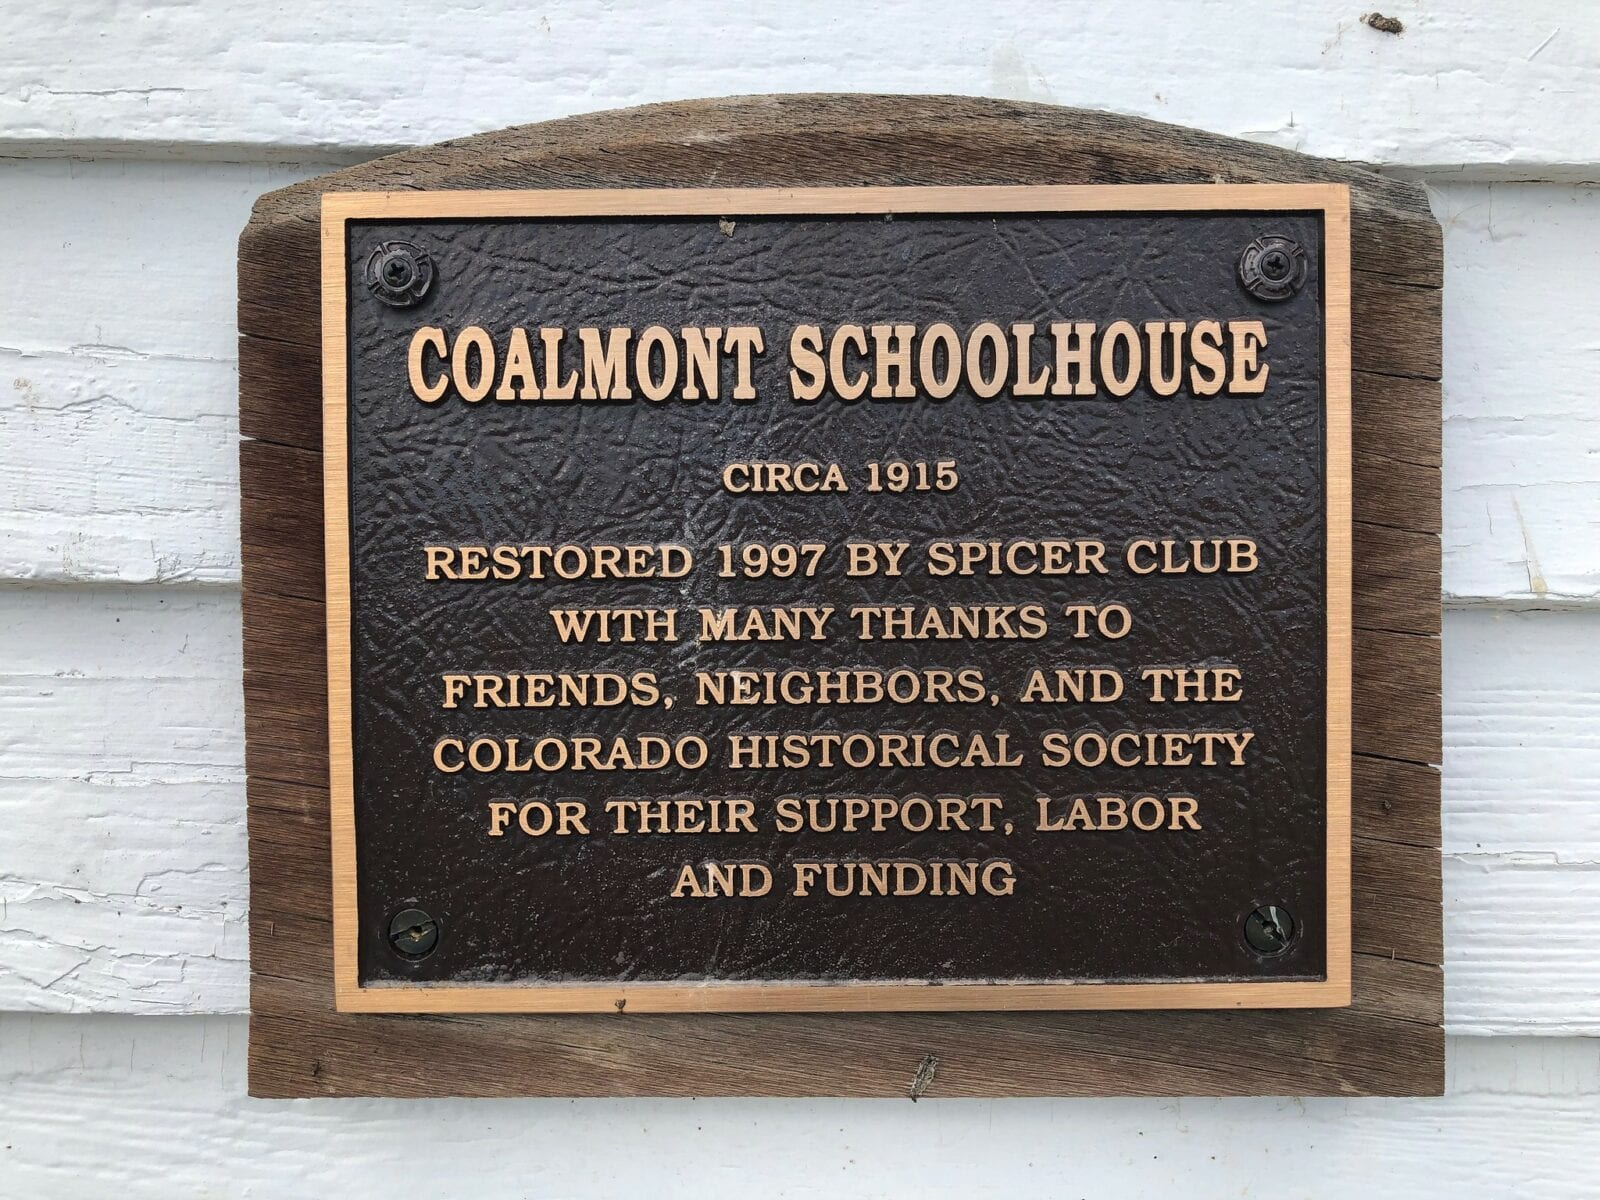 Image of the Coalmont ghost town's schoolhouse sign in Colorado